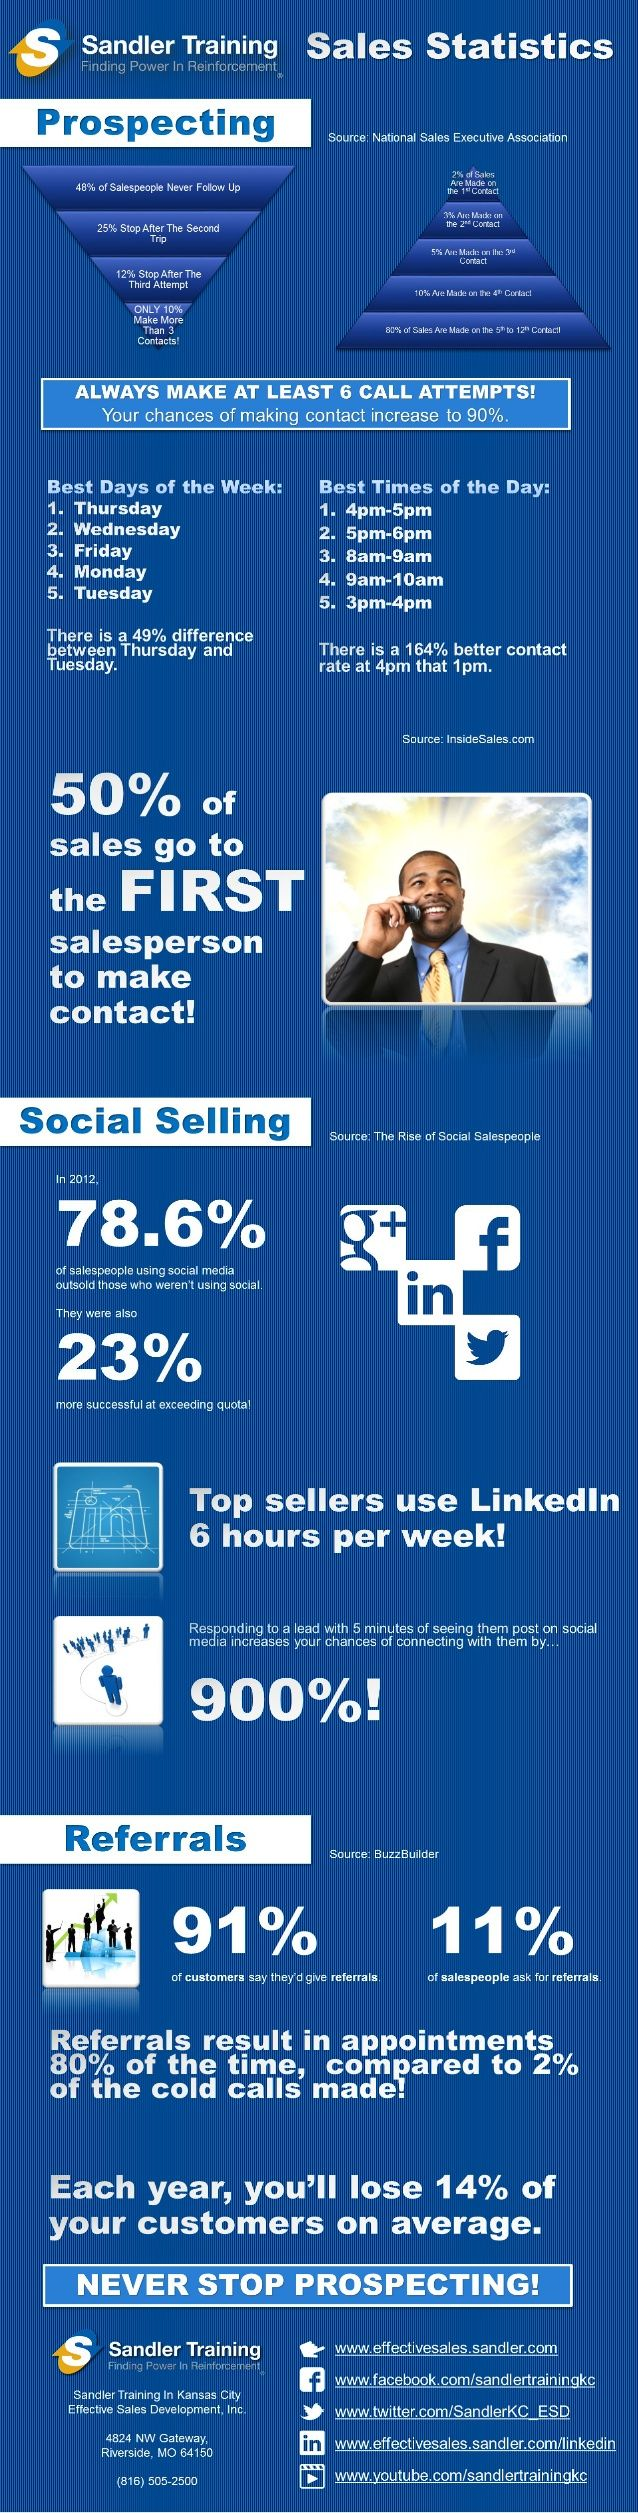 Staggering Sales Stats By Sandler Training Kansas City